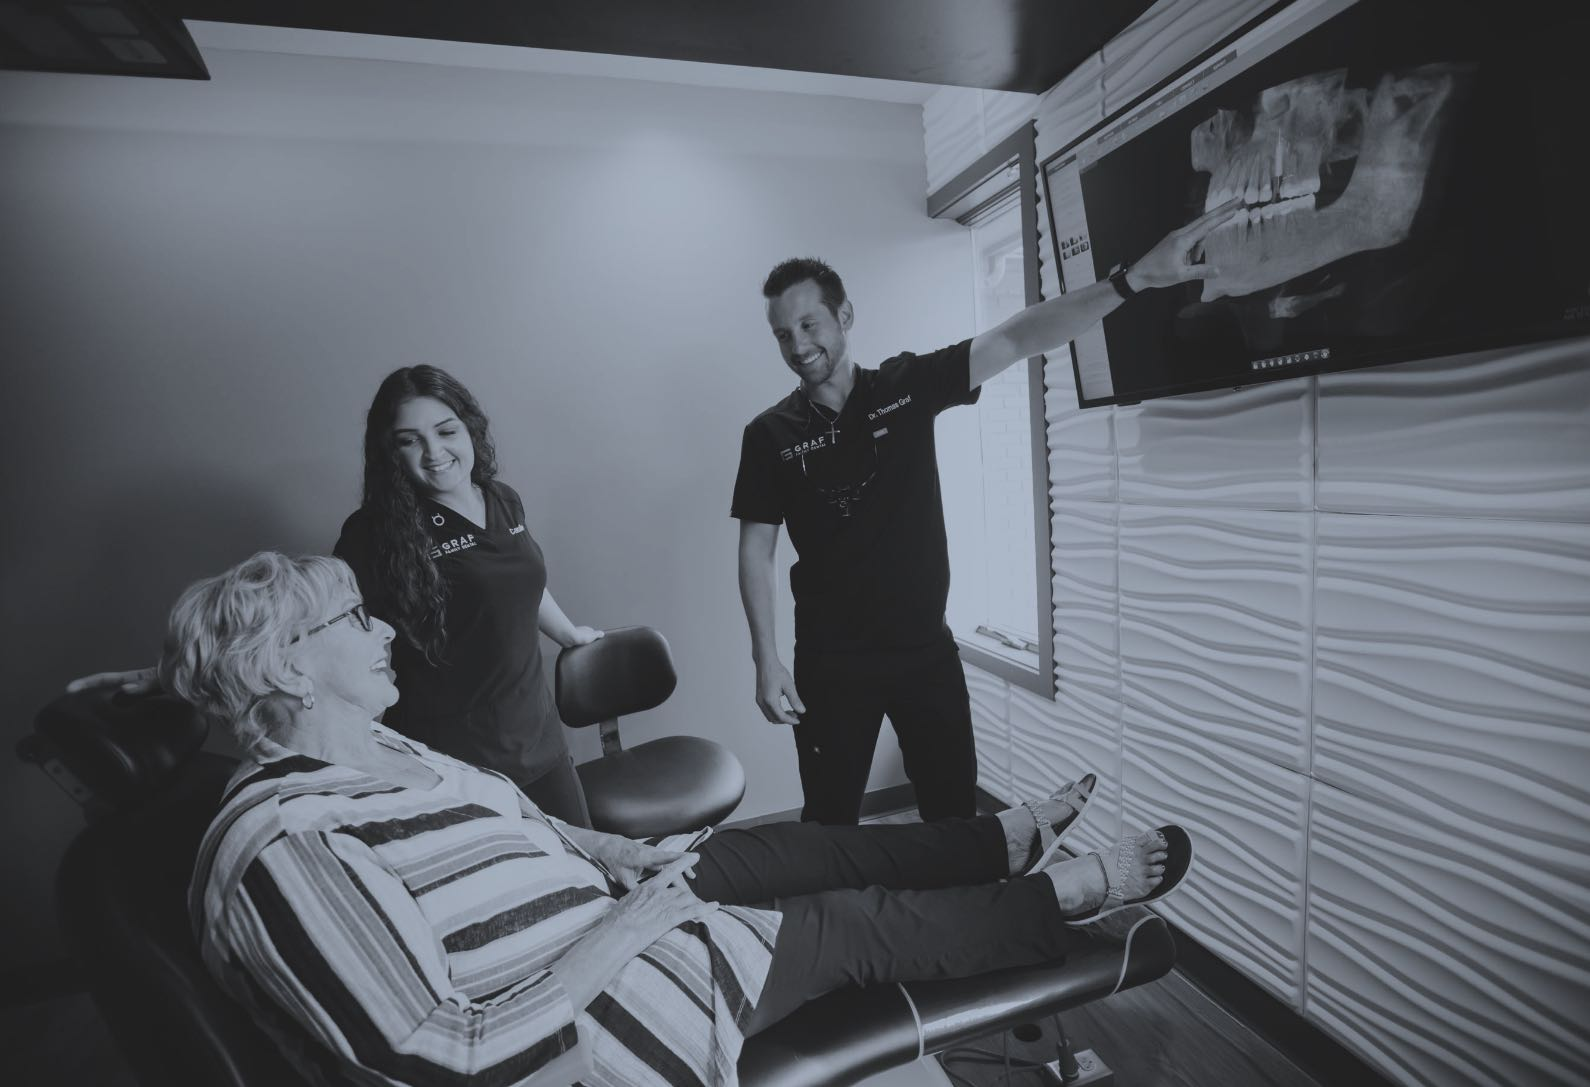 Photo of a patient, team member, and Dr. Graf pointing at an x-ray image on a screen